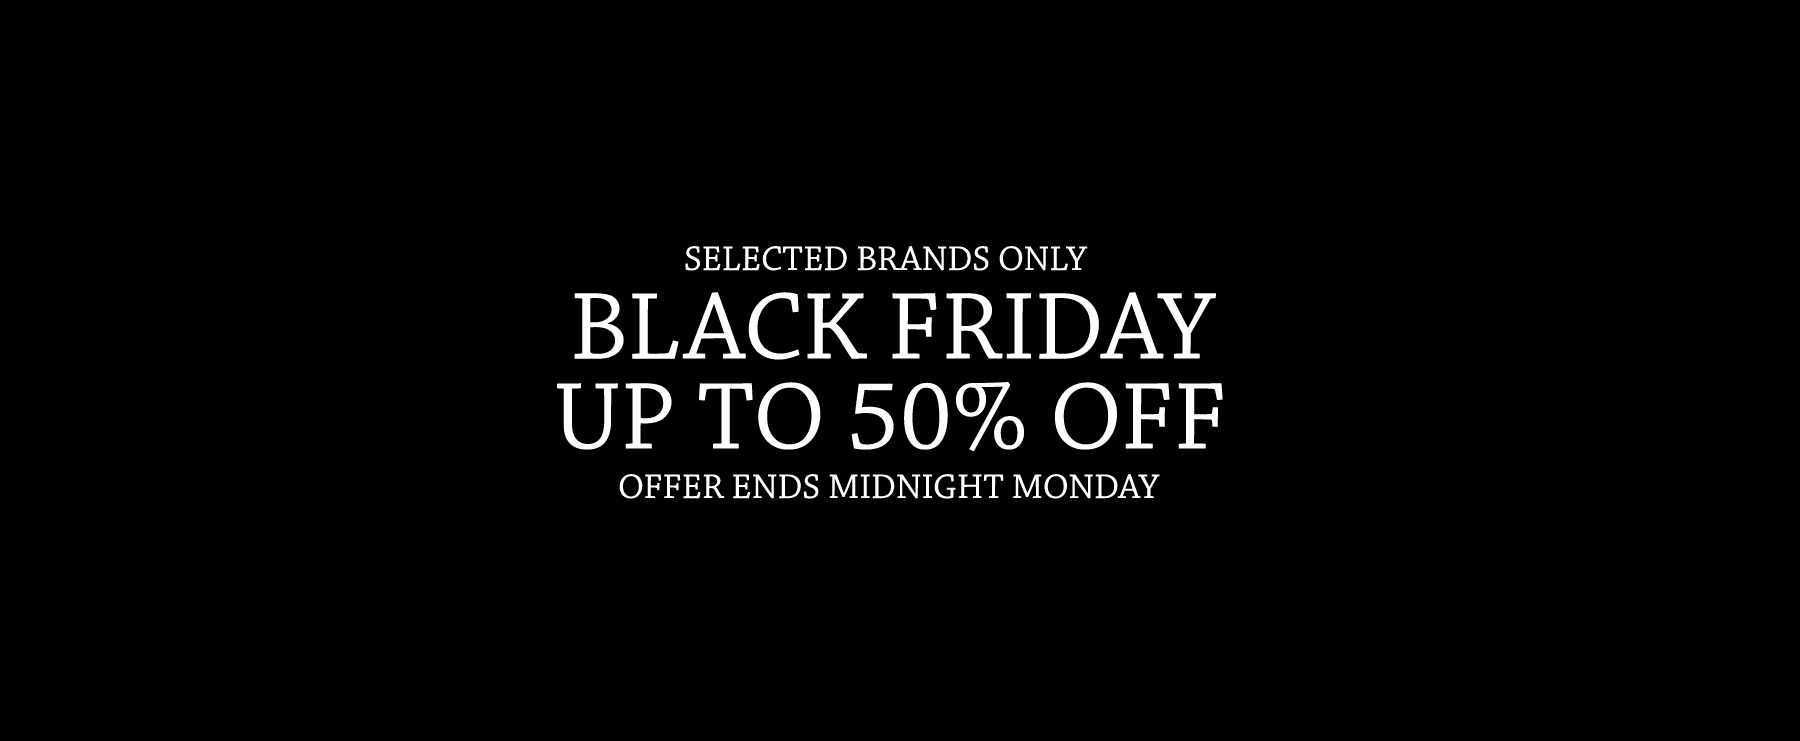 Black Friday Up To 50% OFF